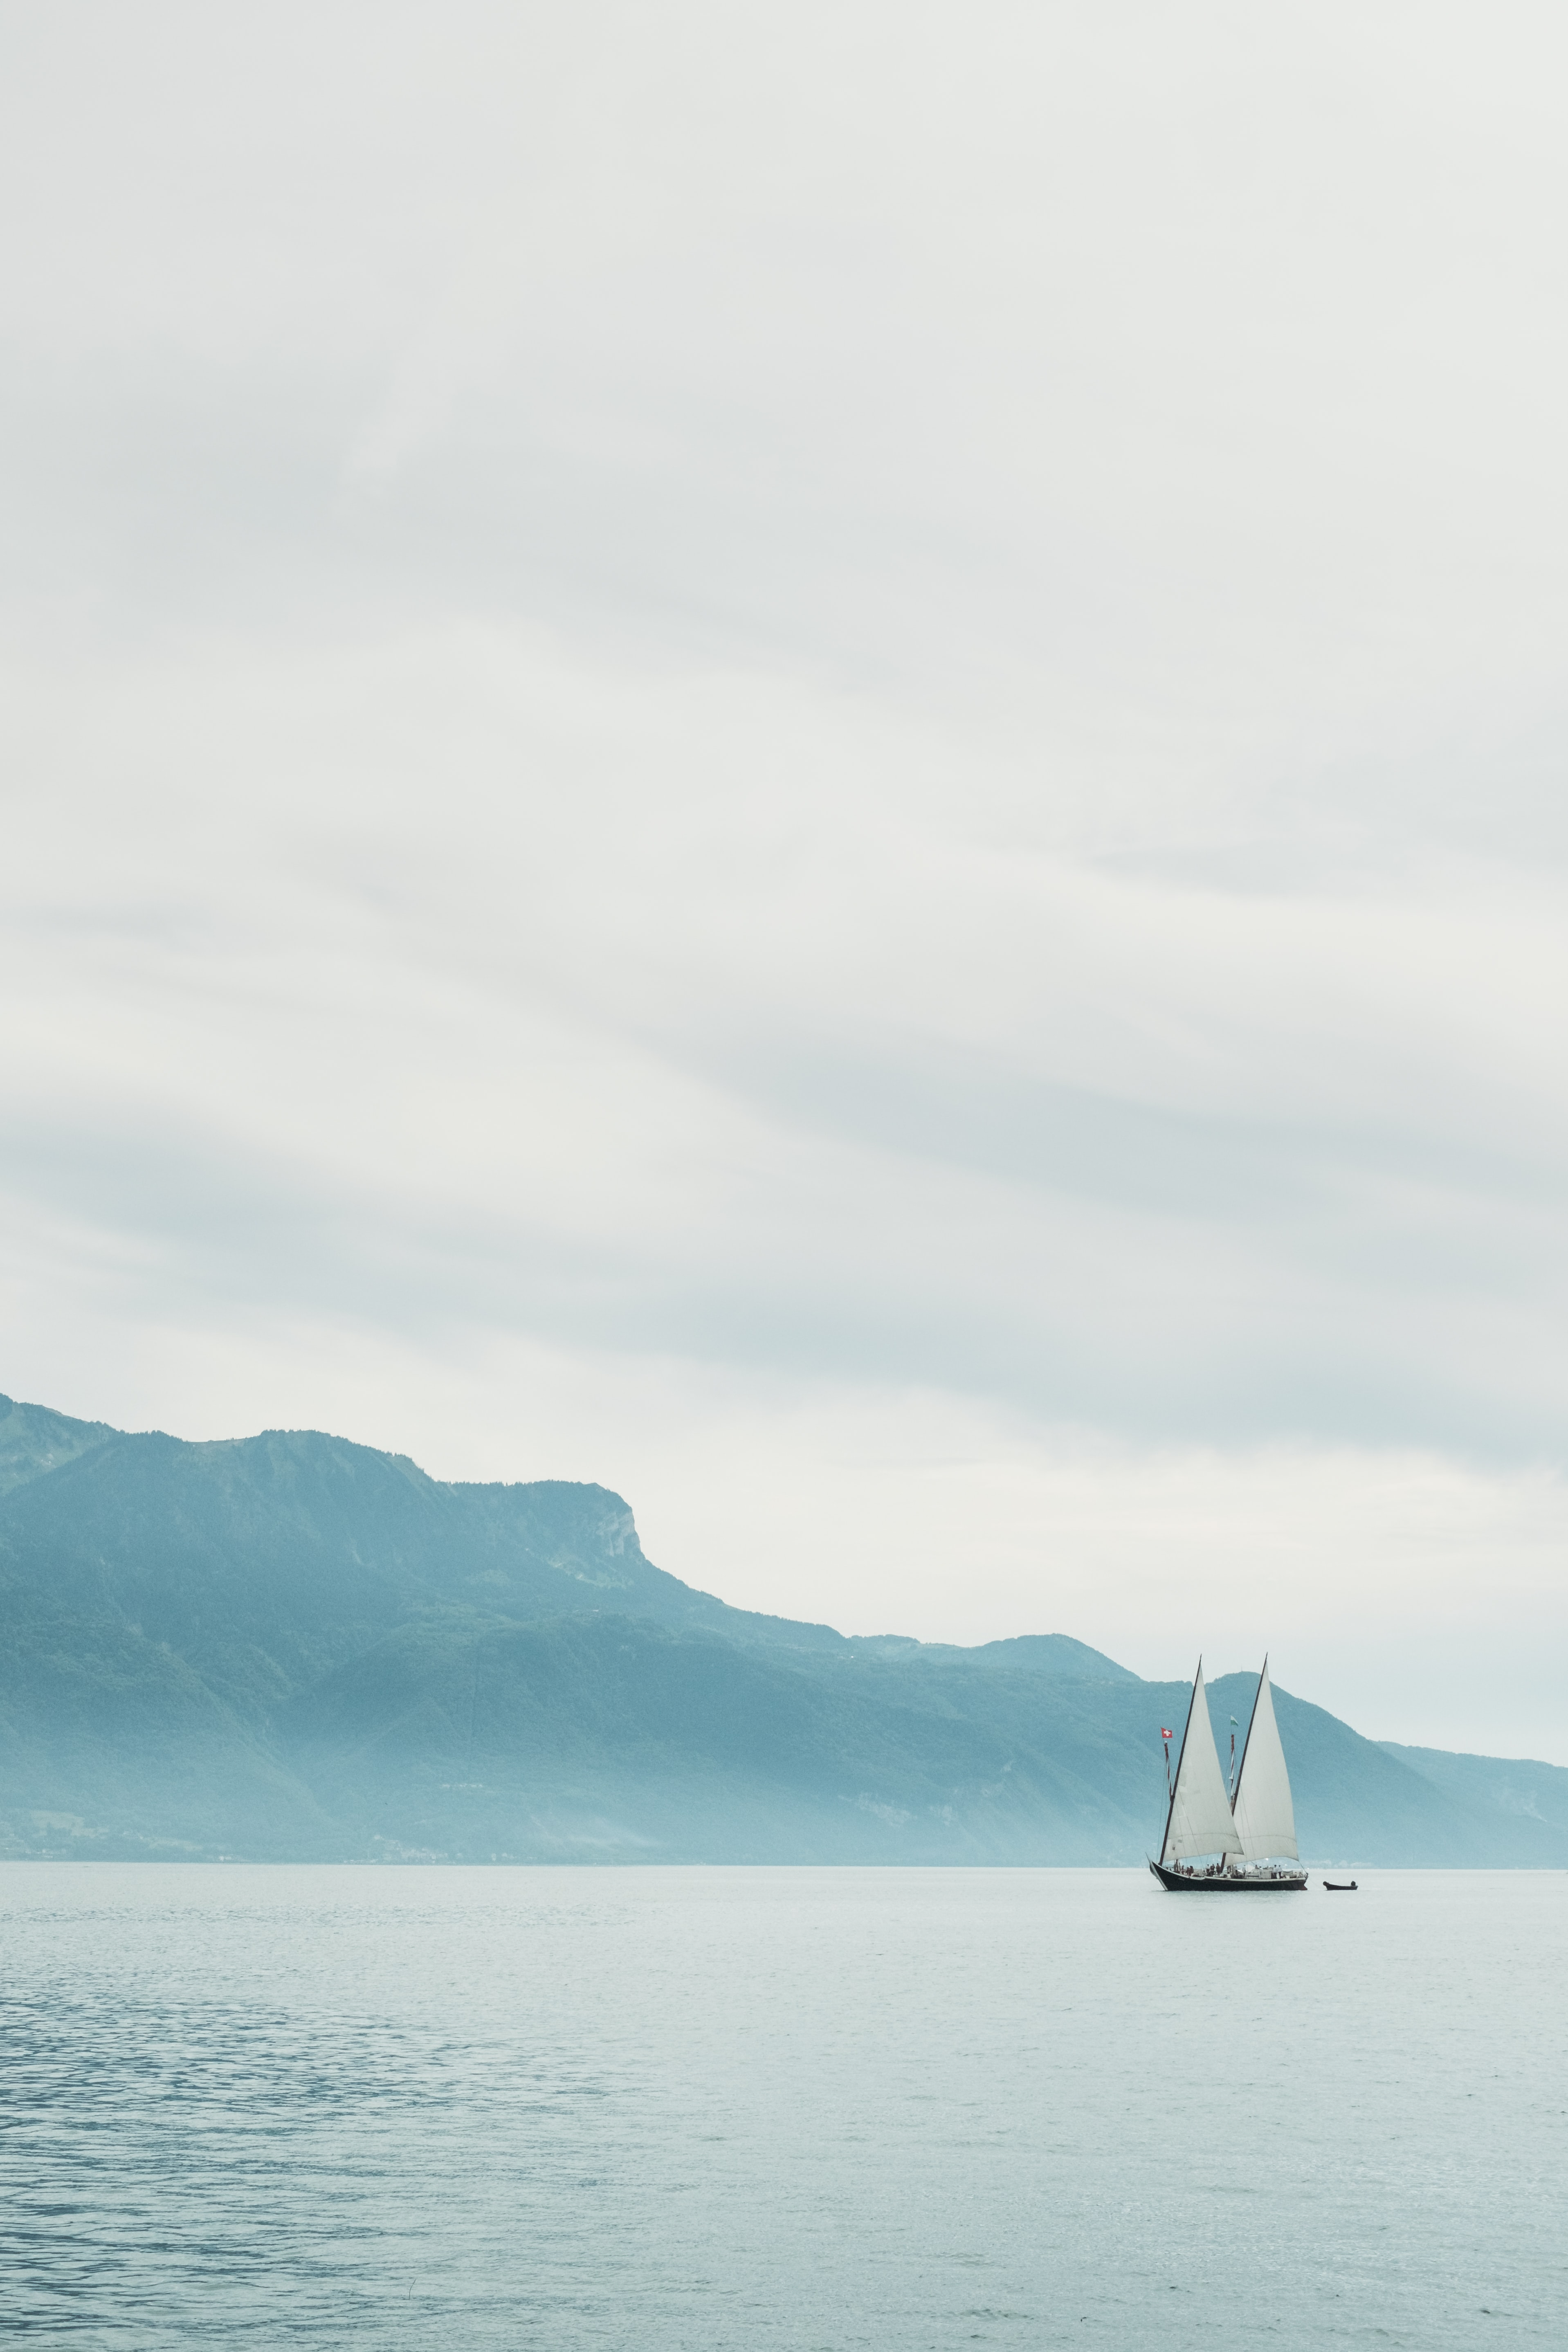 A sailboat floating in the water near a large mountain.